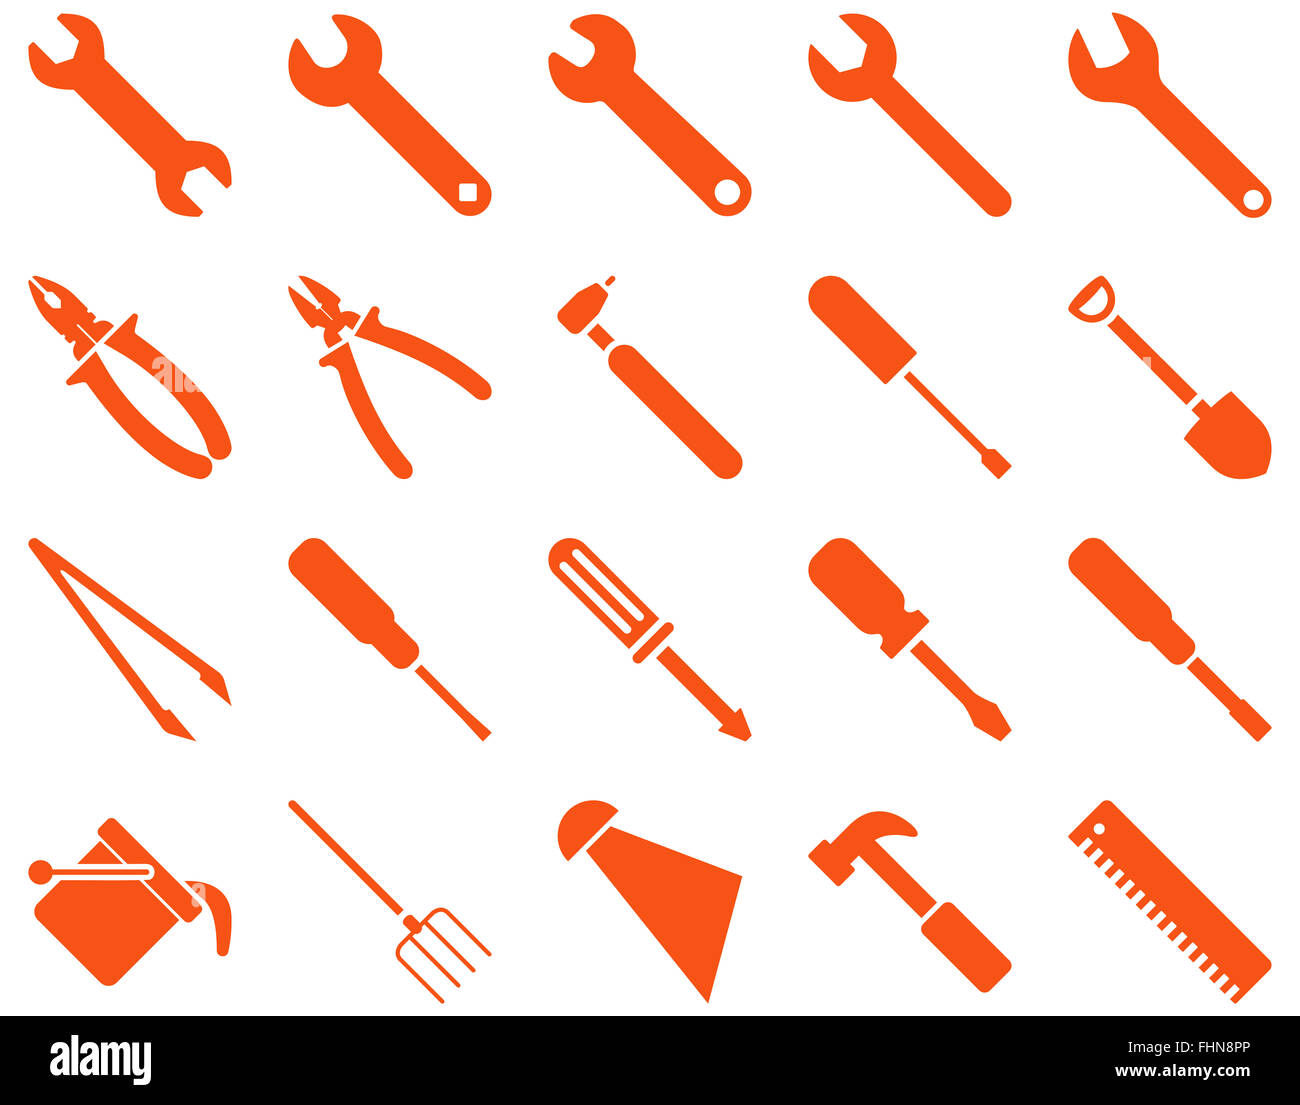 Equipment and Tools Icons - Stock Image